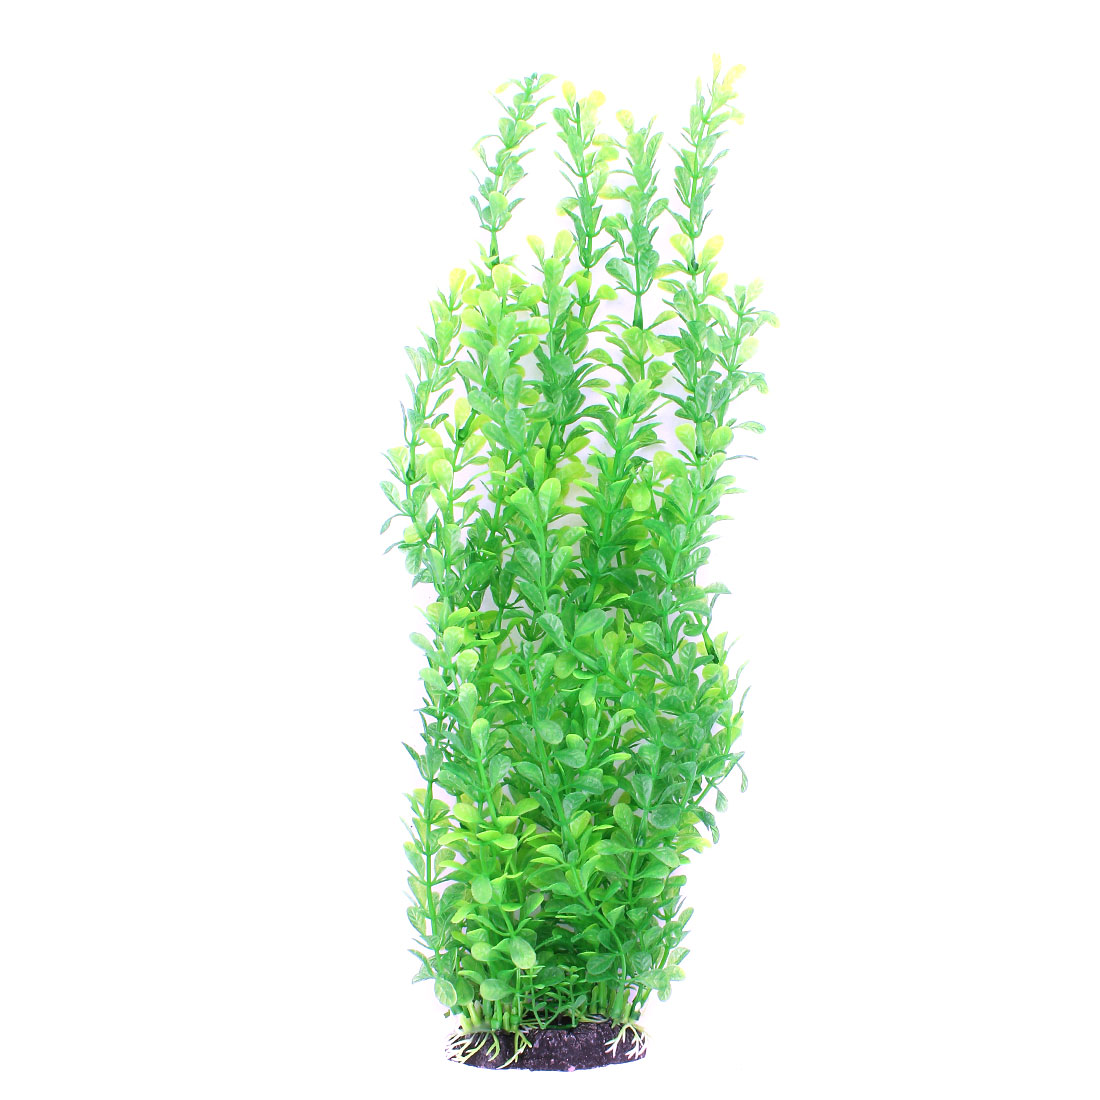 "41cm 16"" Long Green Plastic Artifical Aquarium Plant Underwater Grass Oranment for Fish Tank Fishbowl"